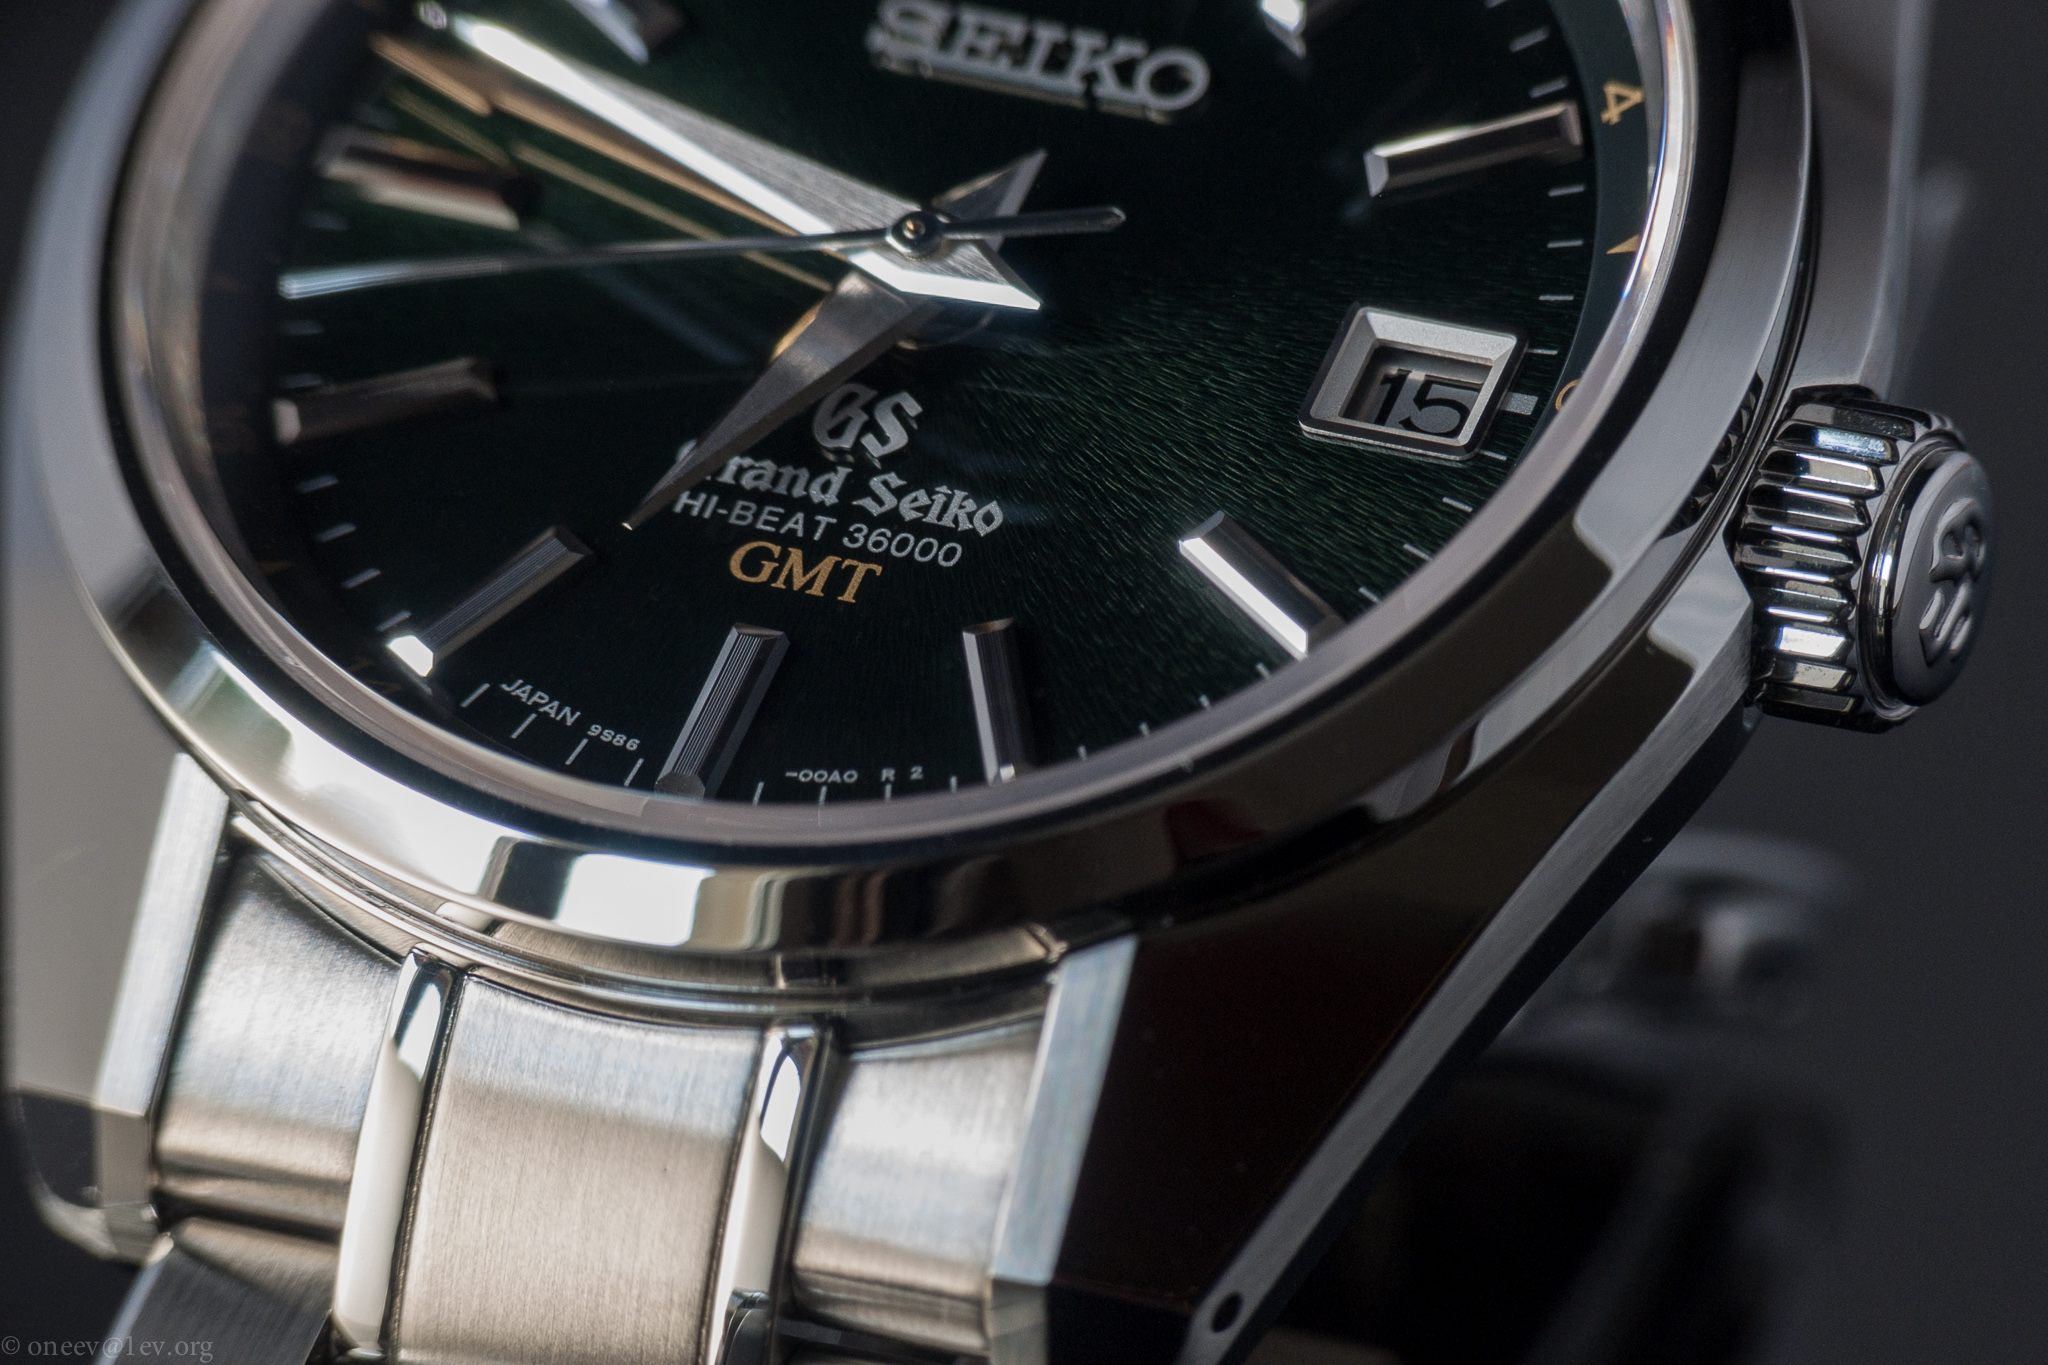 Revue illustrée de la Grand Seiko GMT Hi-Beat SBGJ005 20140915-CRW_2979